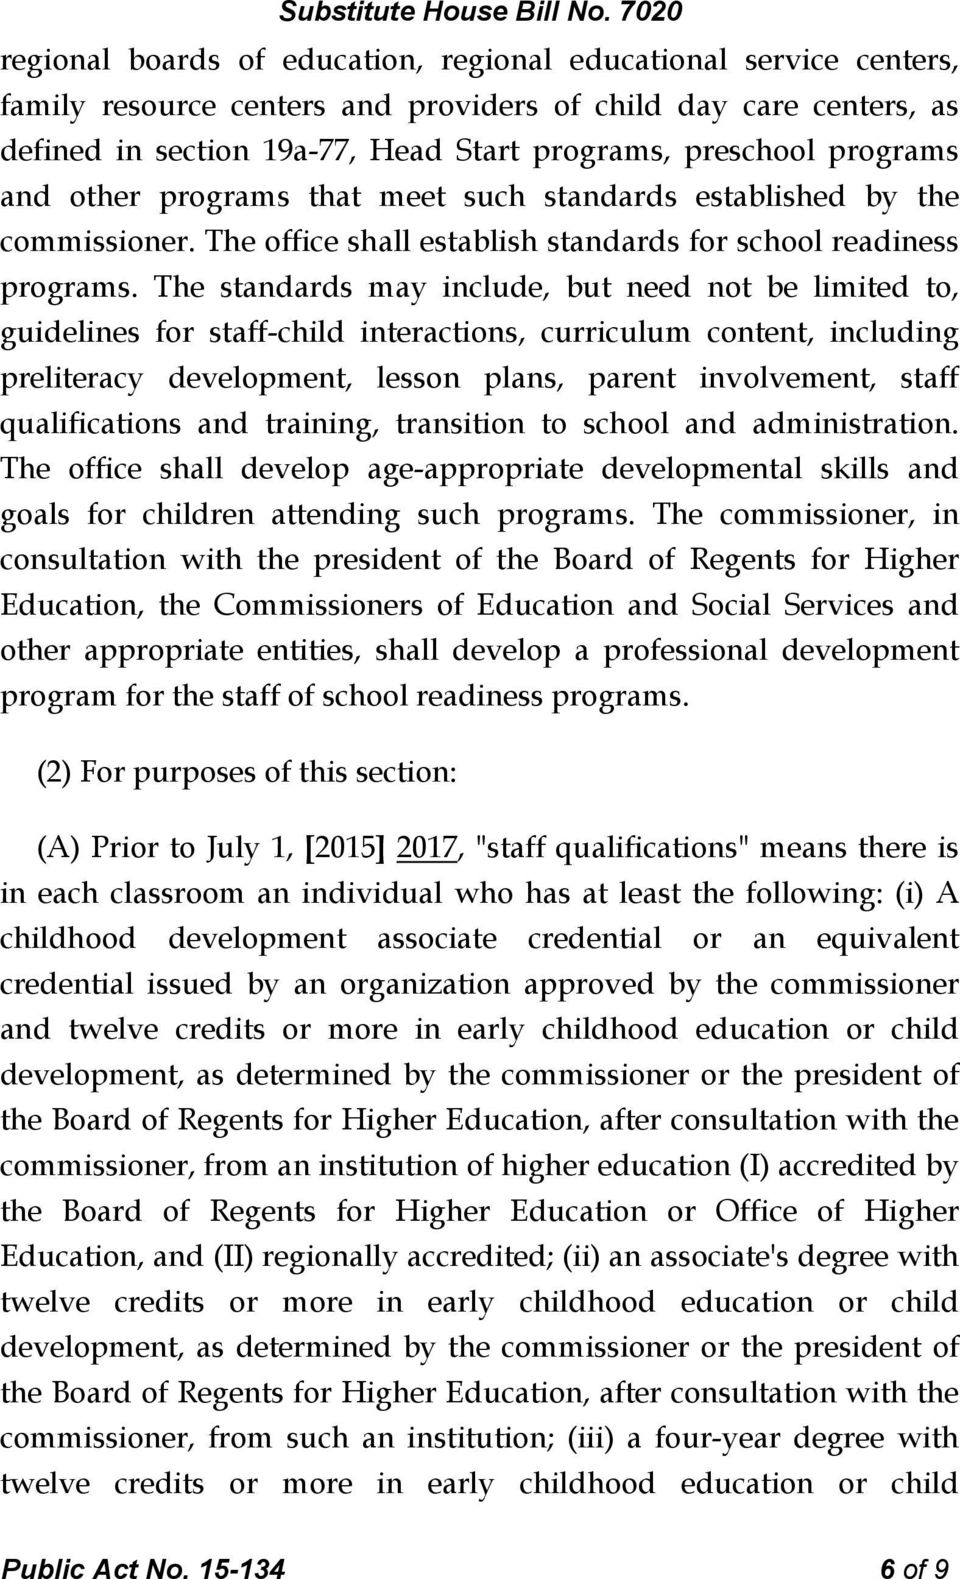 The standards may include, but need not be limited to, guidelines for staff-child interactions, curriculum content, including preliteracy development, lesson plans, parent involvement, staff